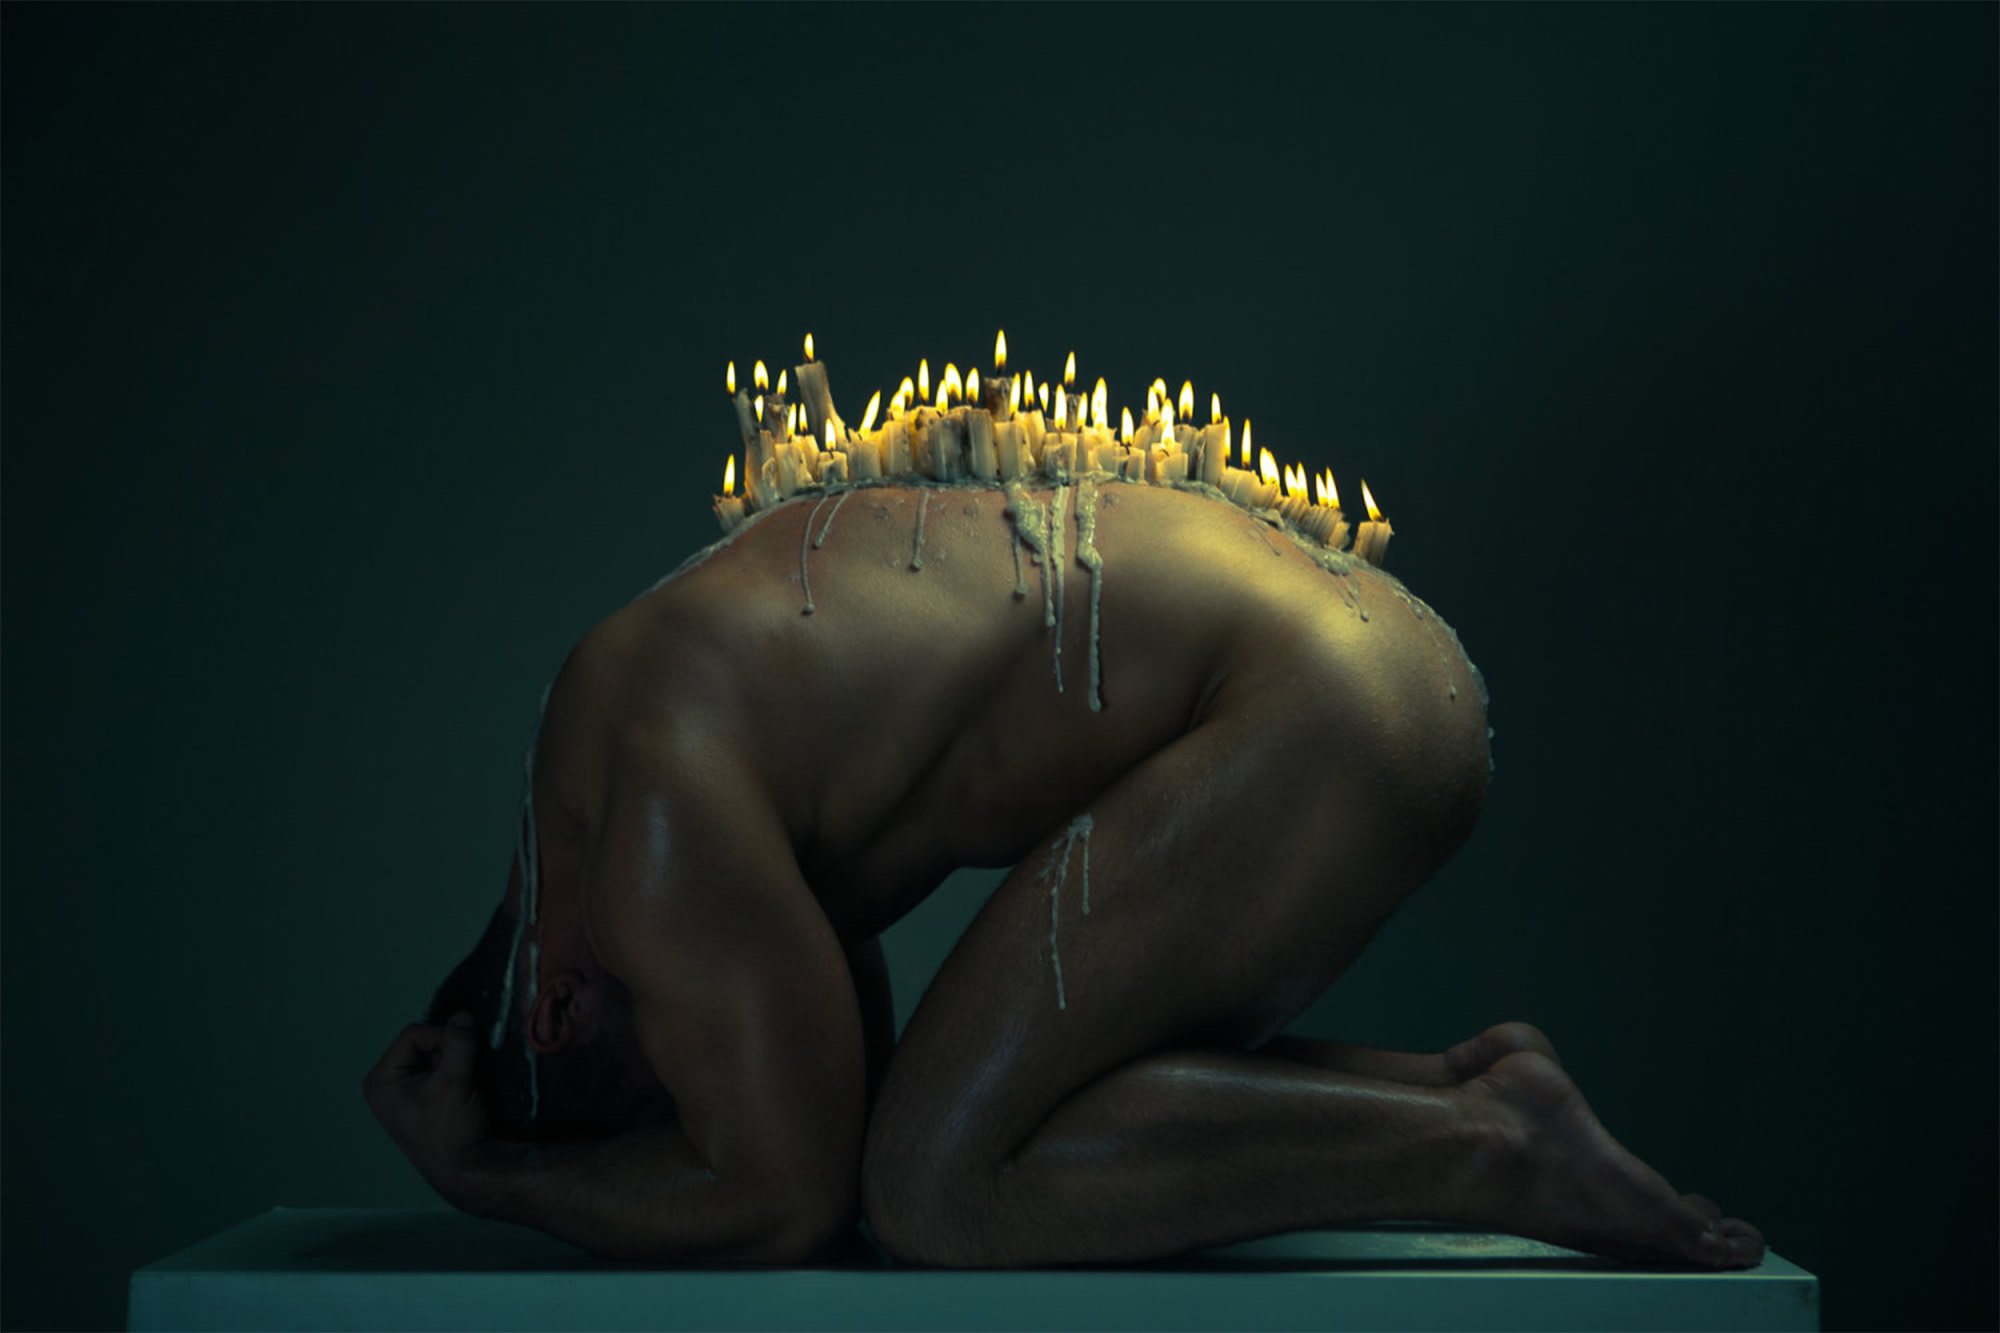 candles melting on man's back, nude photo by ekaterina zakharova